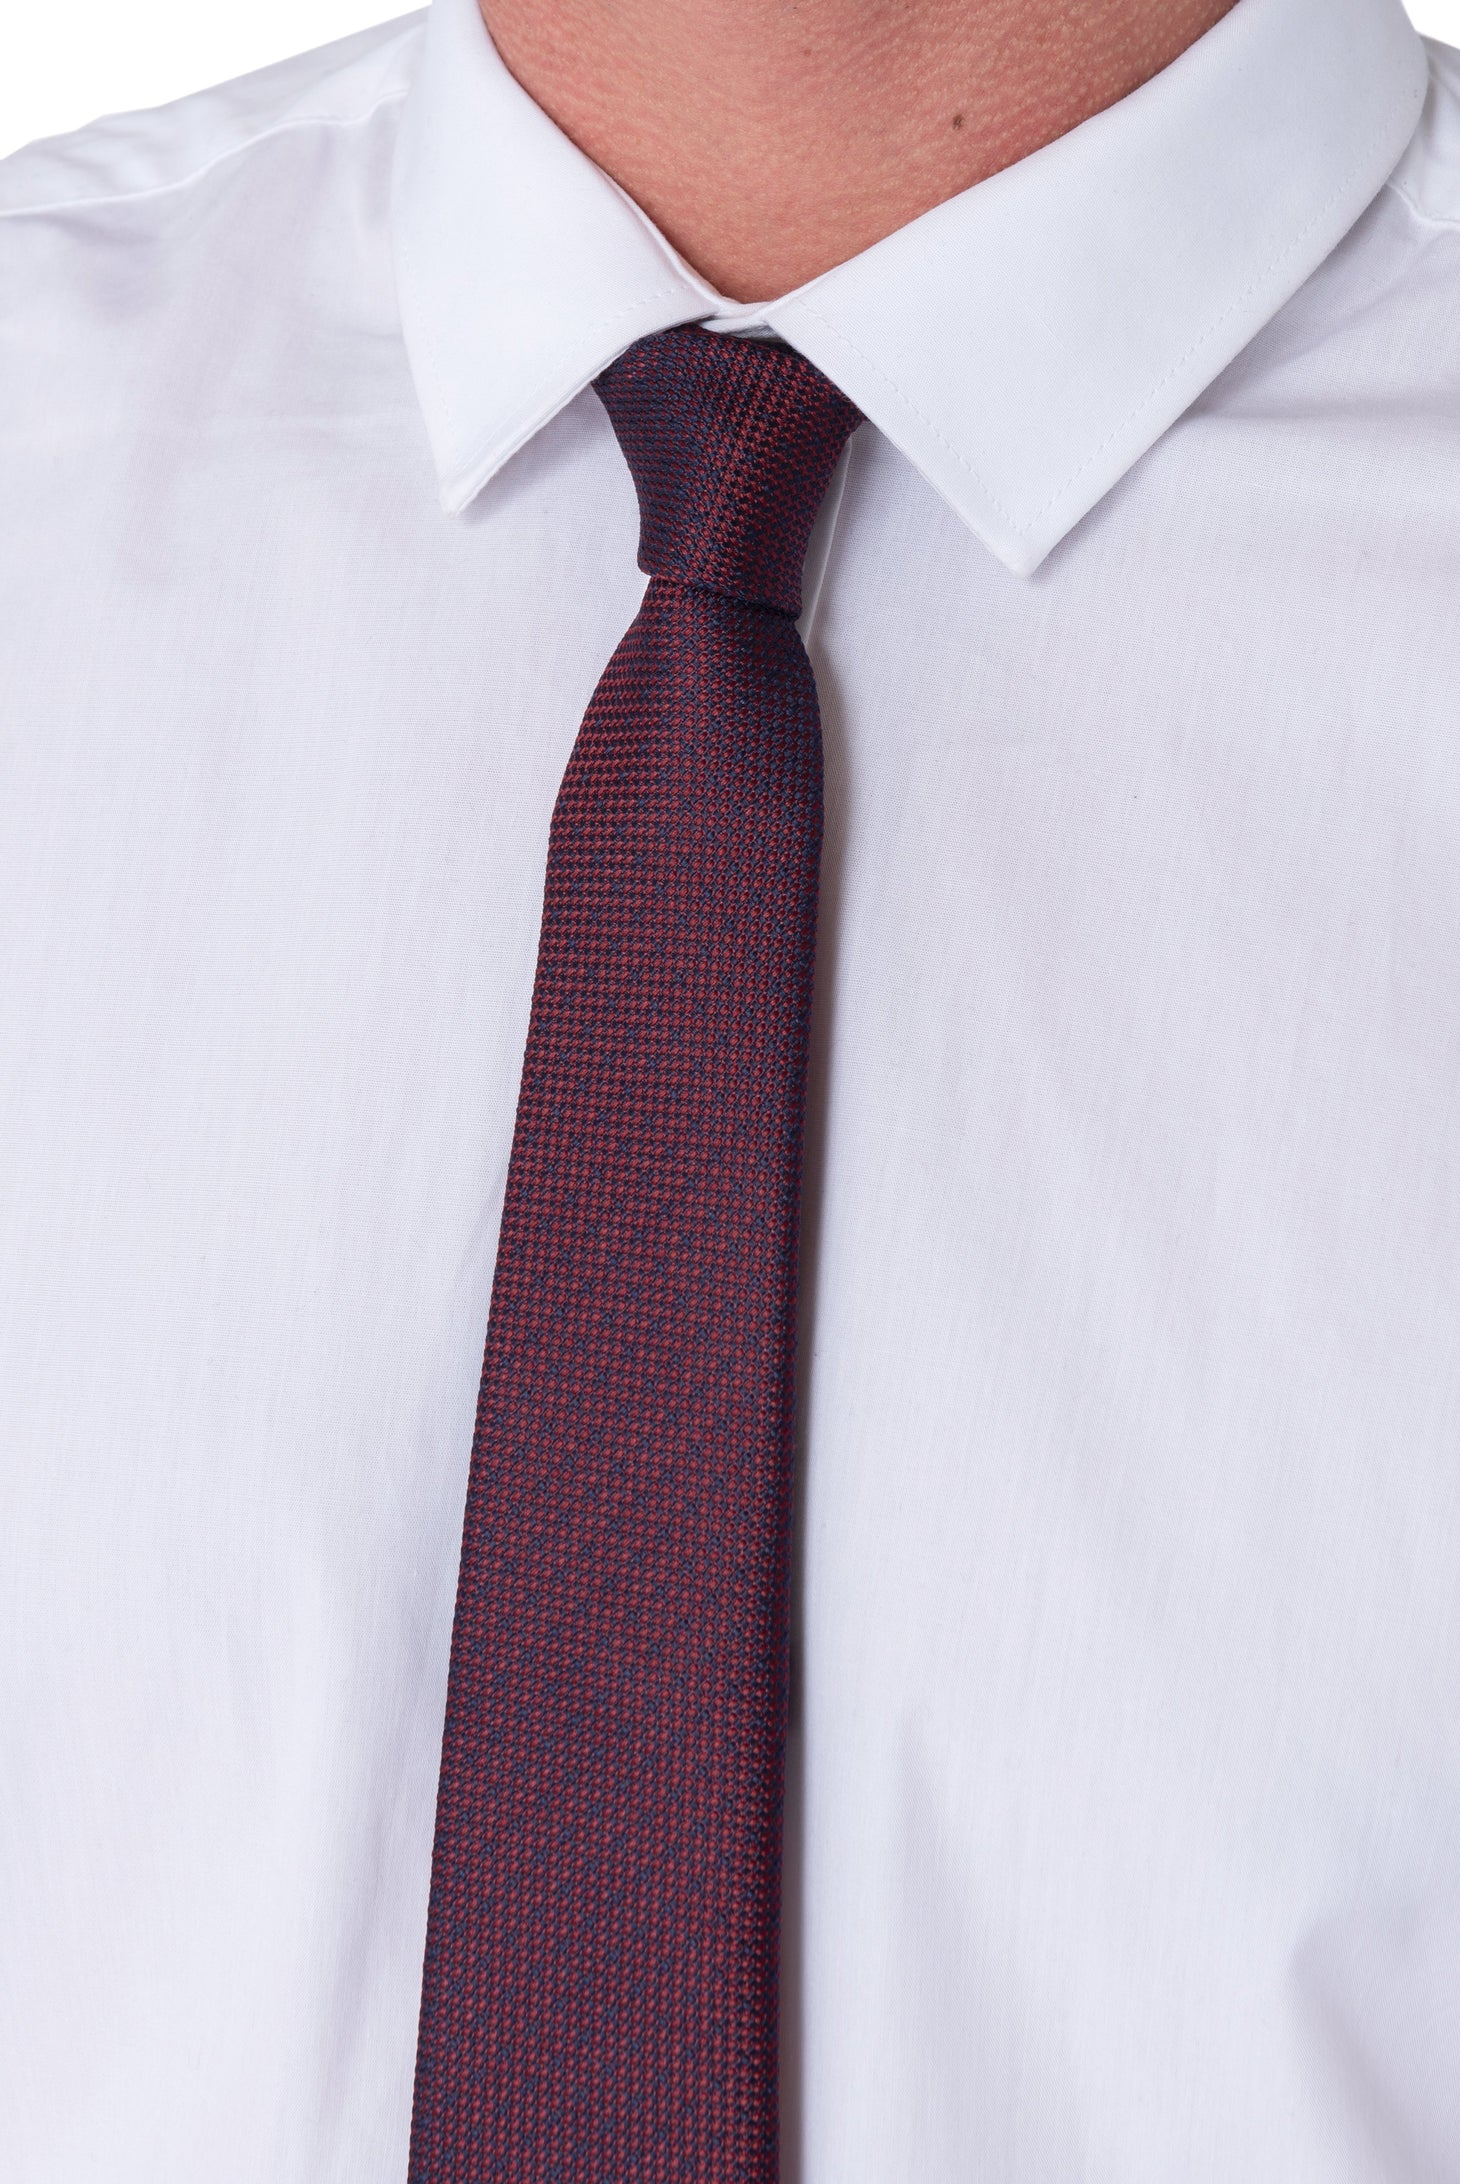 EDWARD Burgundy with Navy Spot Tie